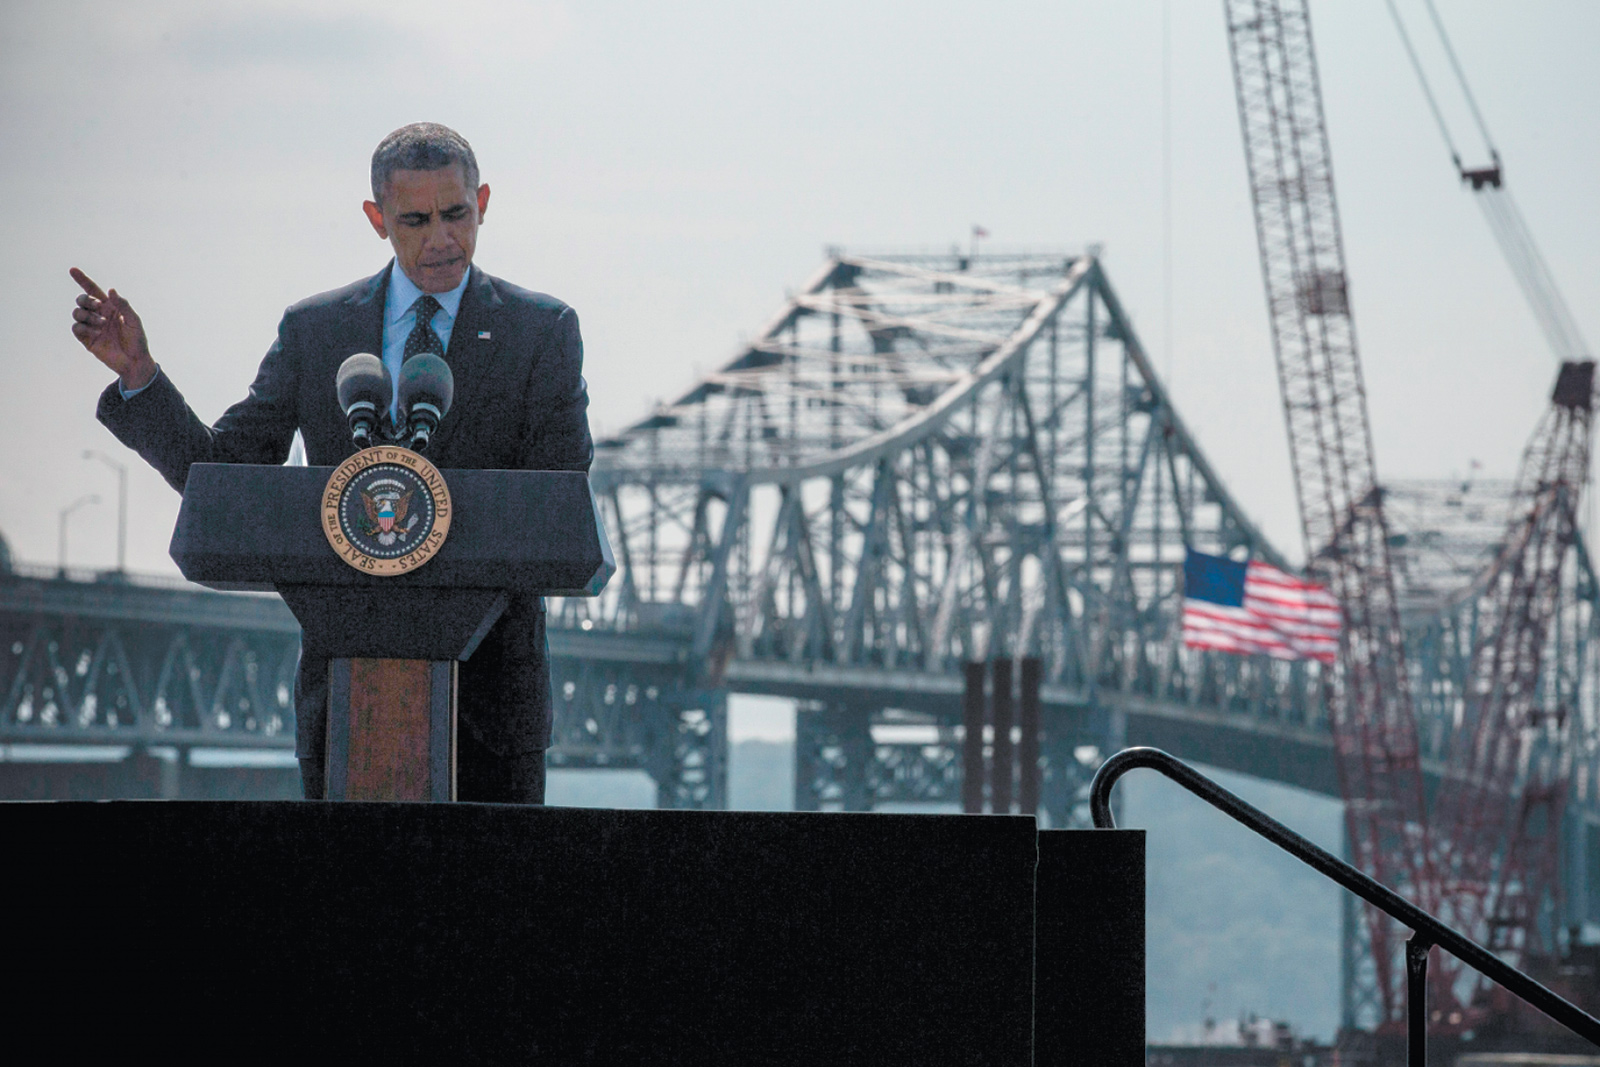 President Obama delivering remarks on infrastructure in the United States near the Tappan Zee Bridge and the construction of its replacement, Tarrytown, New York, May 2014